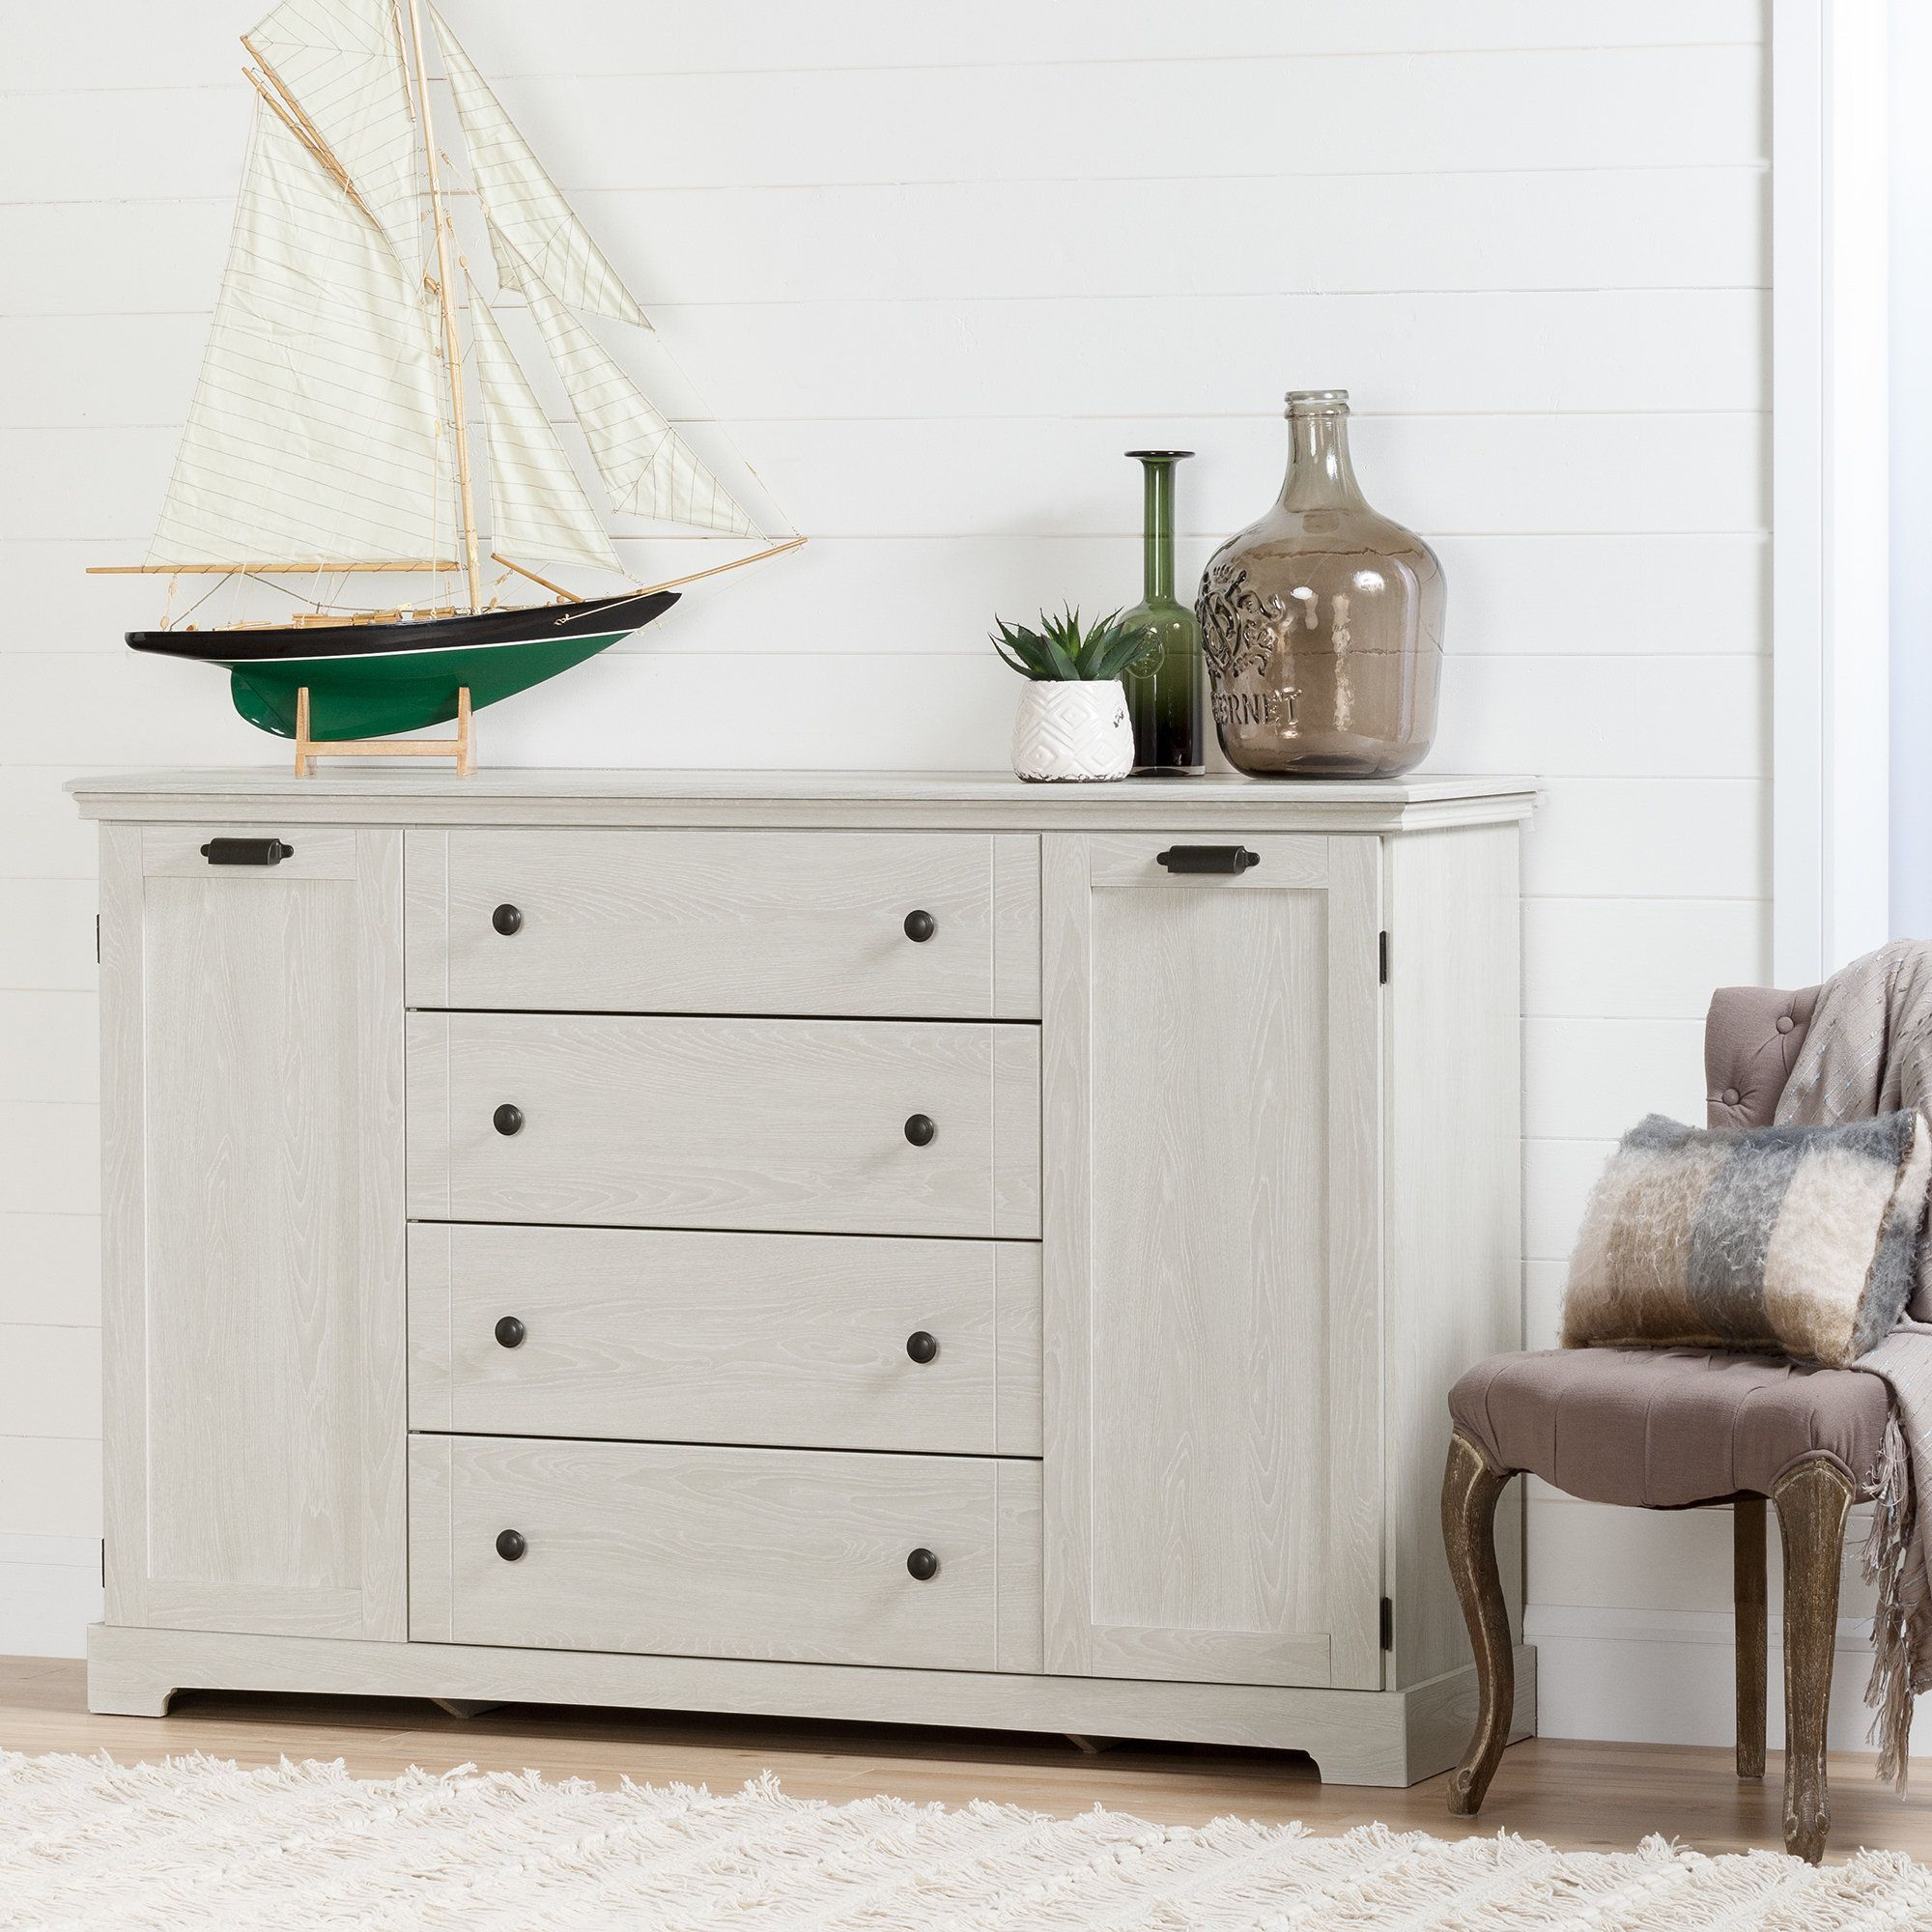 oak with drawer doors pin winter dresser avilla shore south